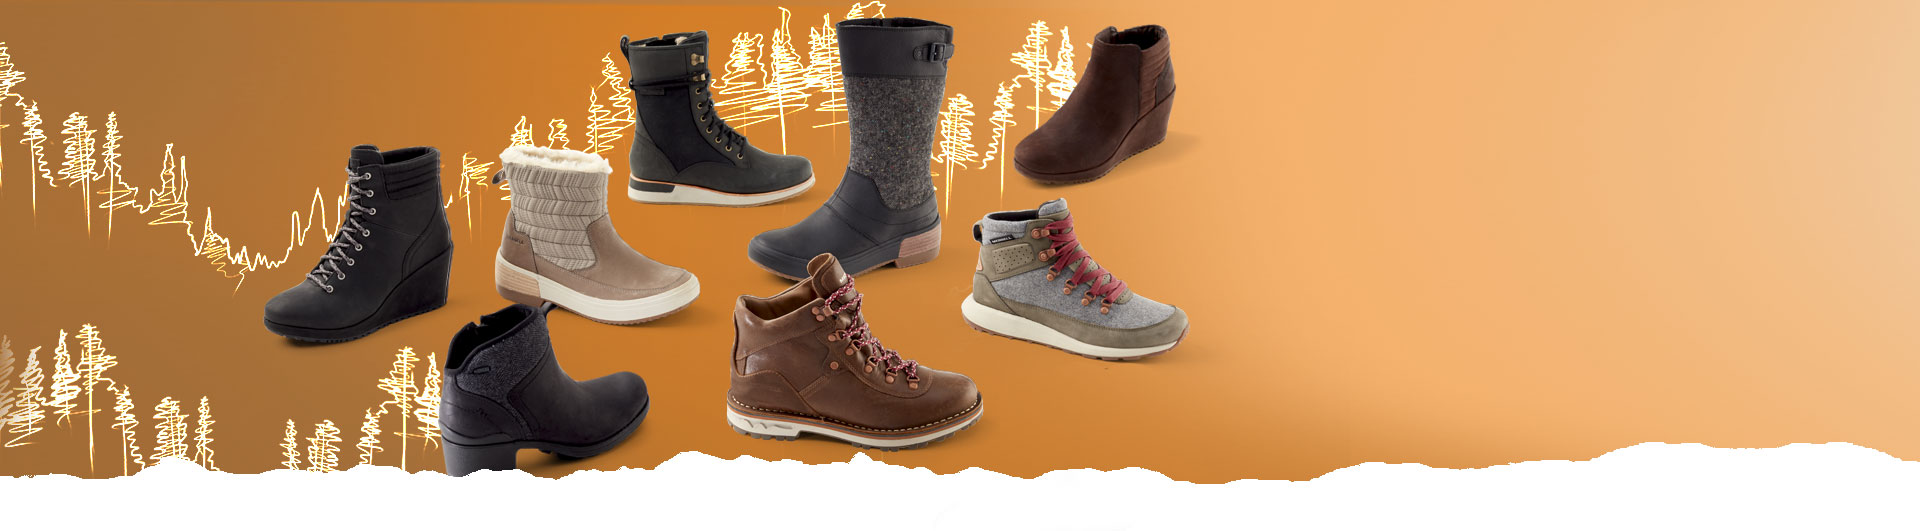 A large group of boots on a fall-themed background. They look super toasty warm!